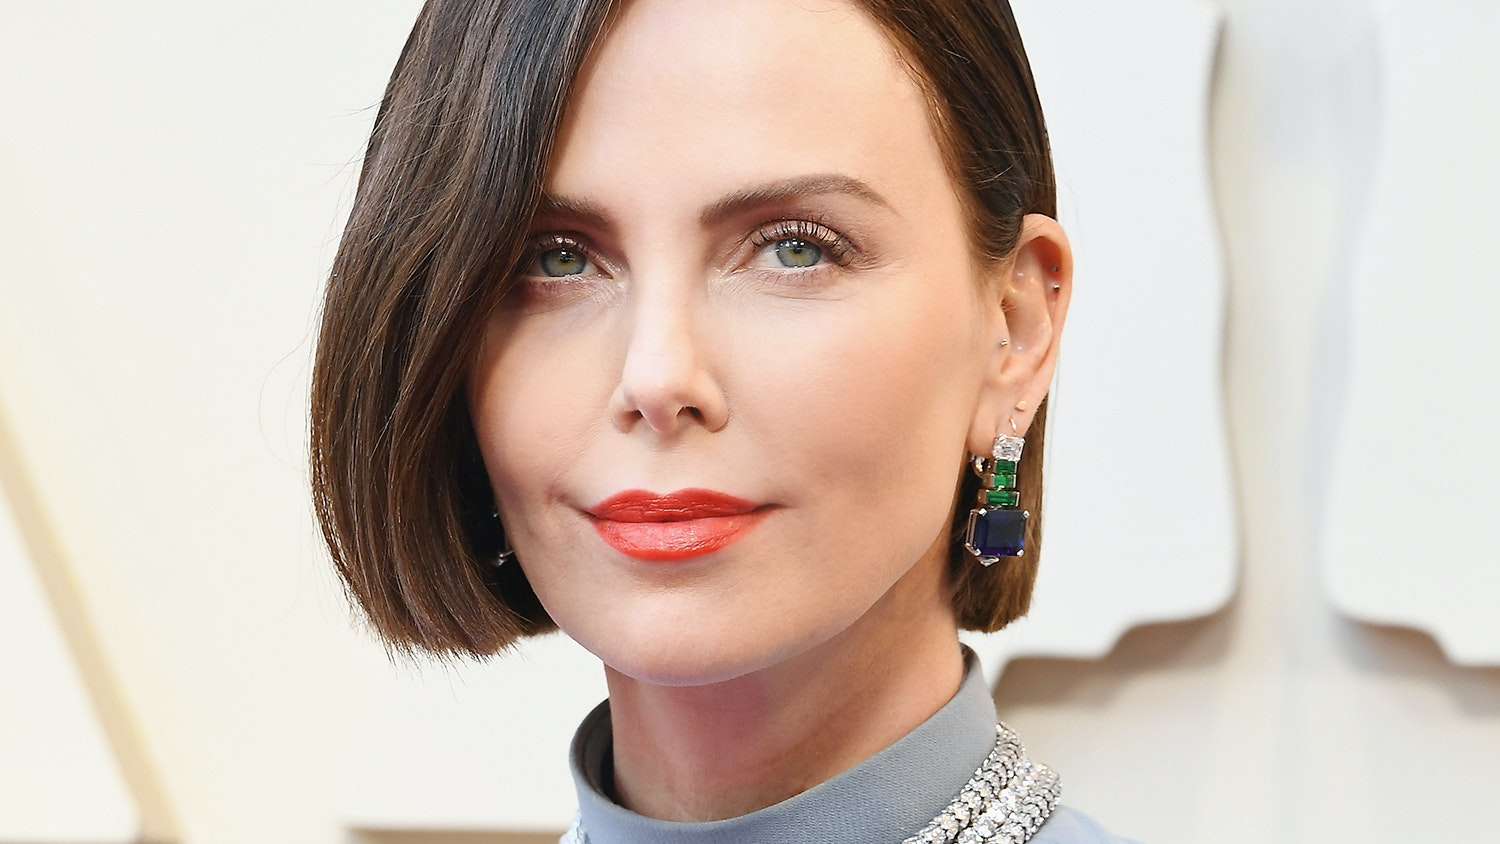 Charlize Theron Just Chopped Off All Her Hair and Dyed It For the Academy Awards